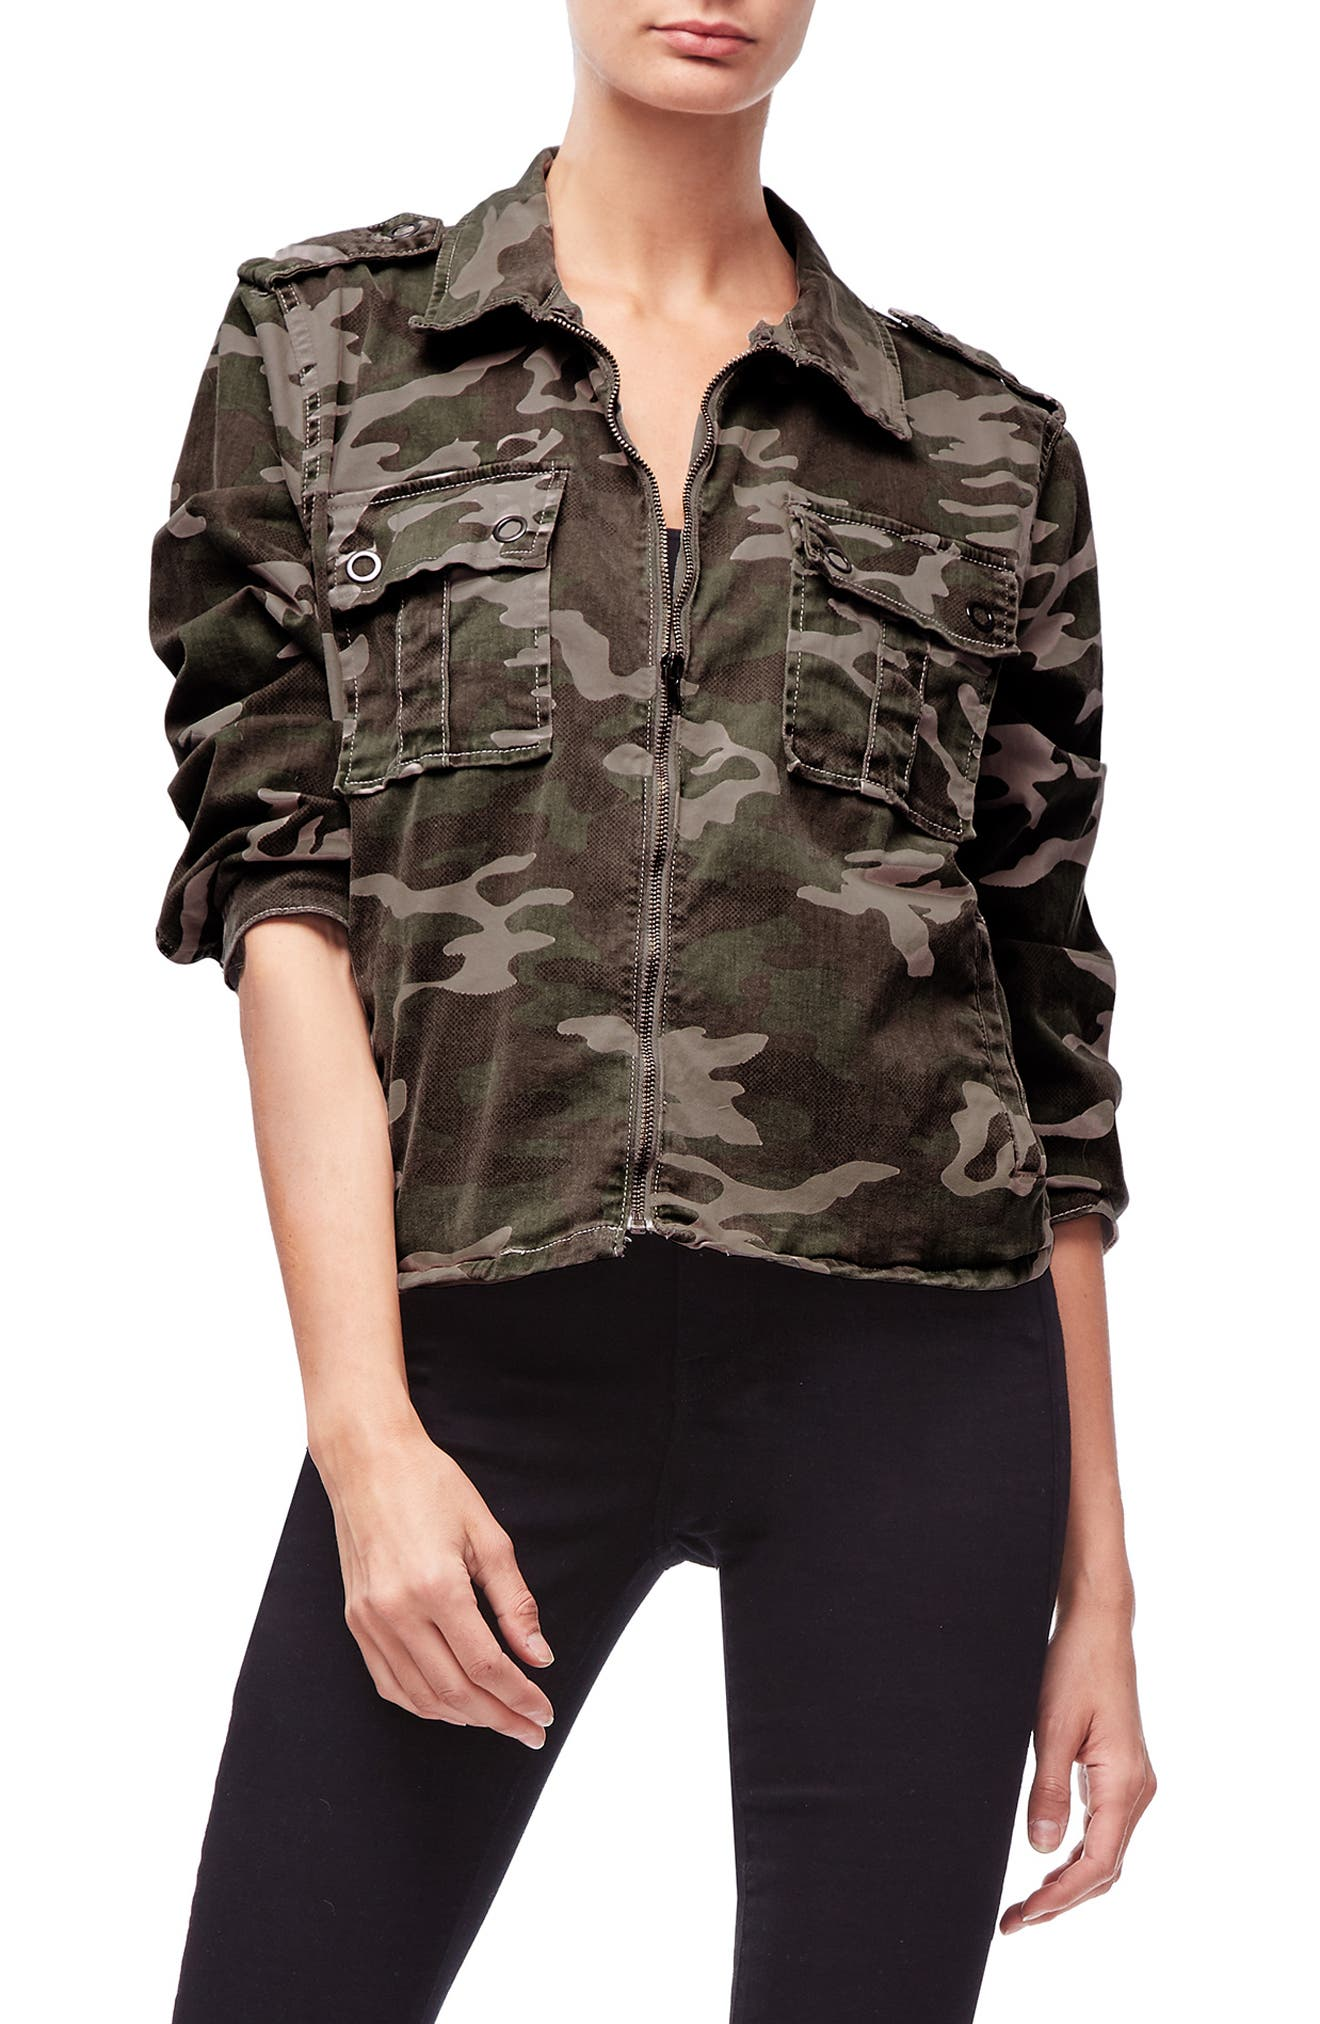 Camo Print Military Jacket,                             Alternate thumbnail 7, color,                             301